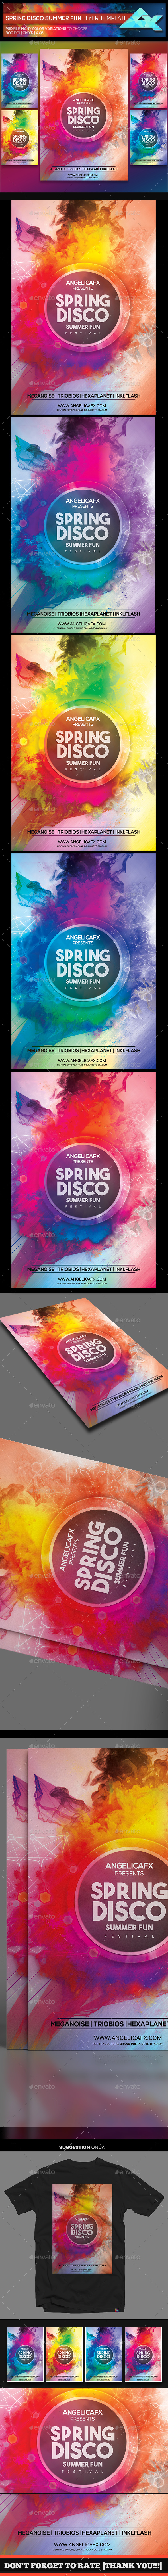 Spring Disco Summer Fest Flyer Template